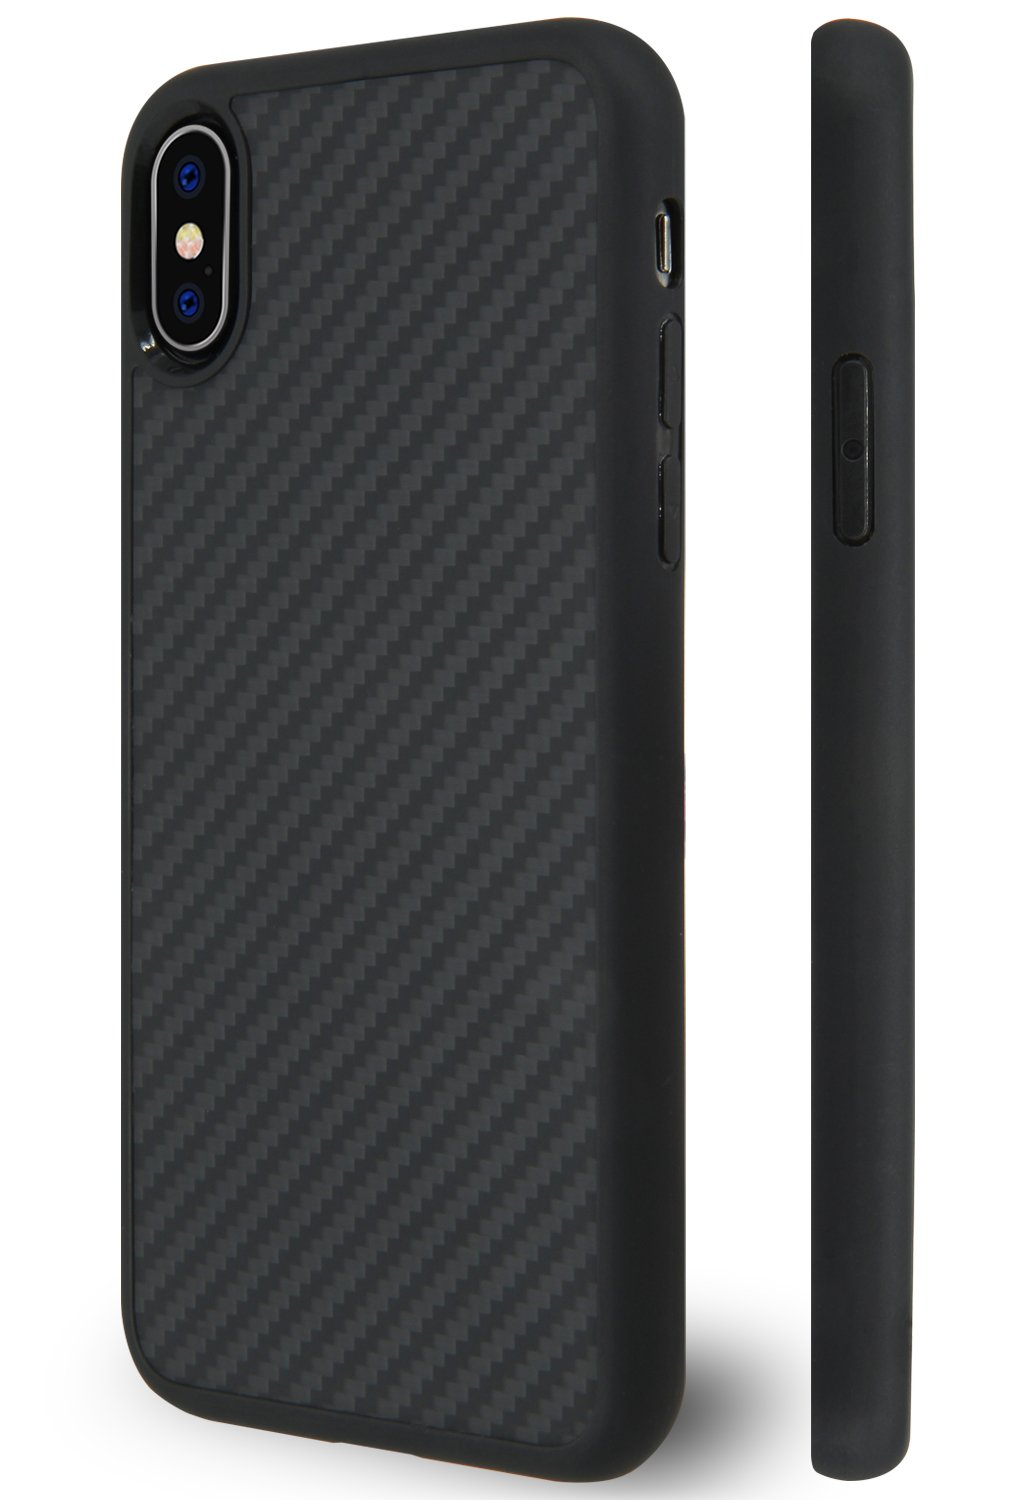 the best attitude 787a3 e9573 iPhone X Case,Yhzo Aramid Fiber iPhone X case,TPU Anti-Dropping Phone  case,Military Standard Protective Lightweight Shell Protective for iPhone X  ...